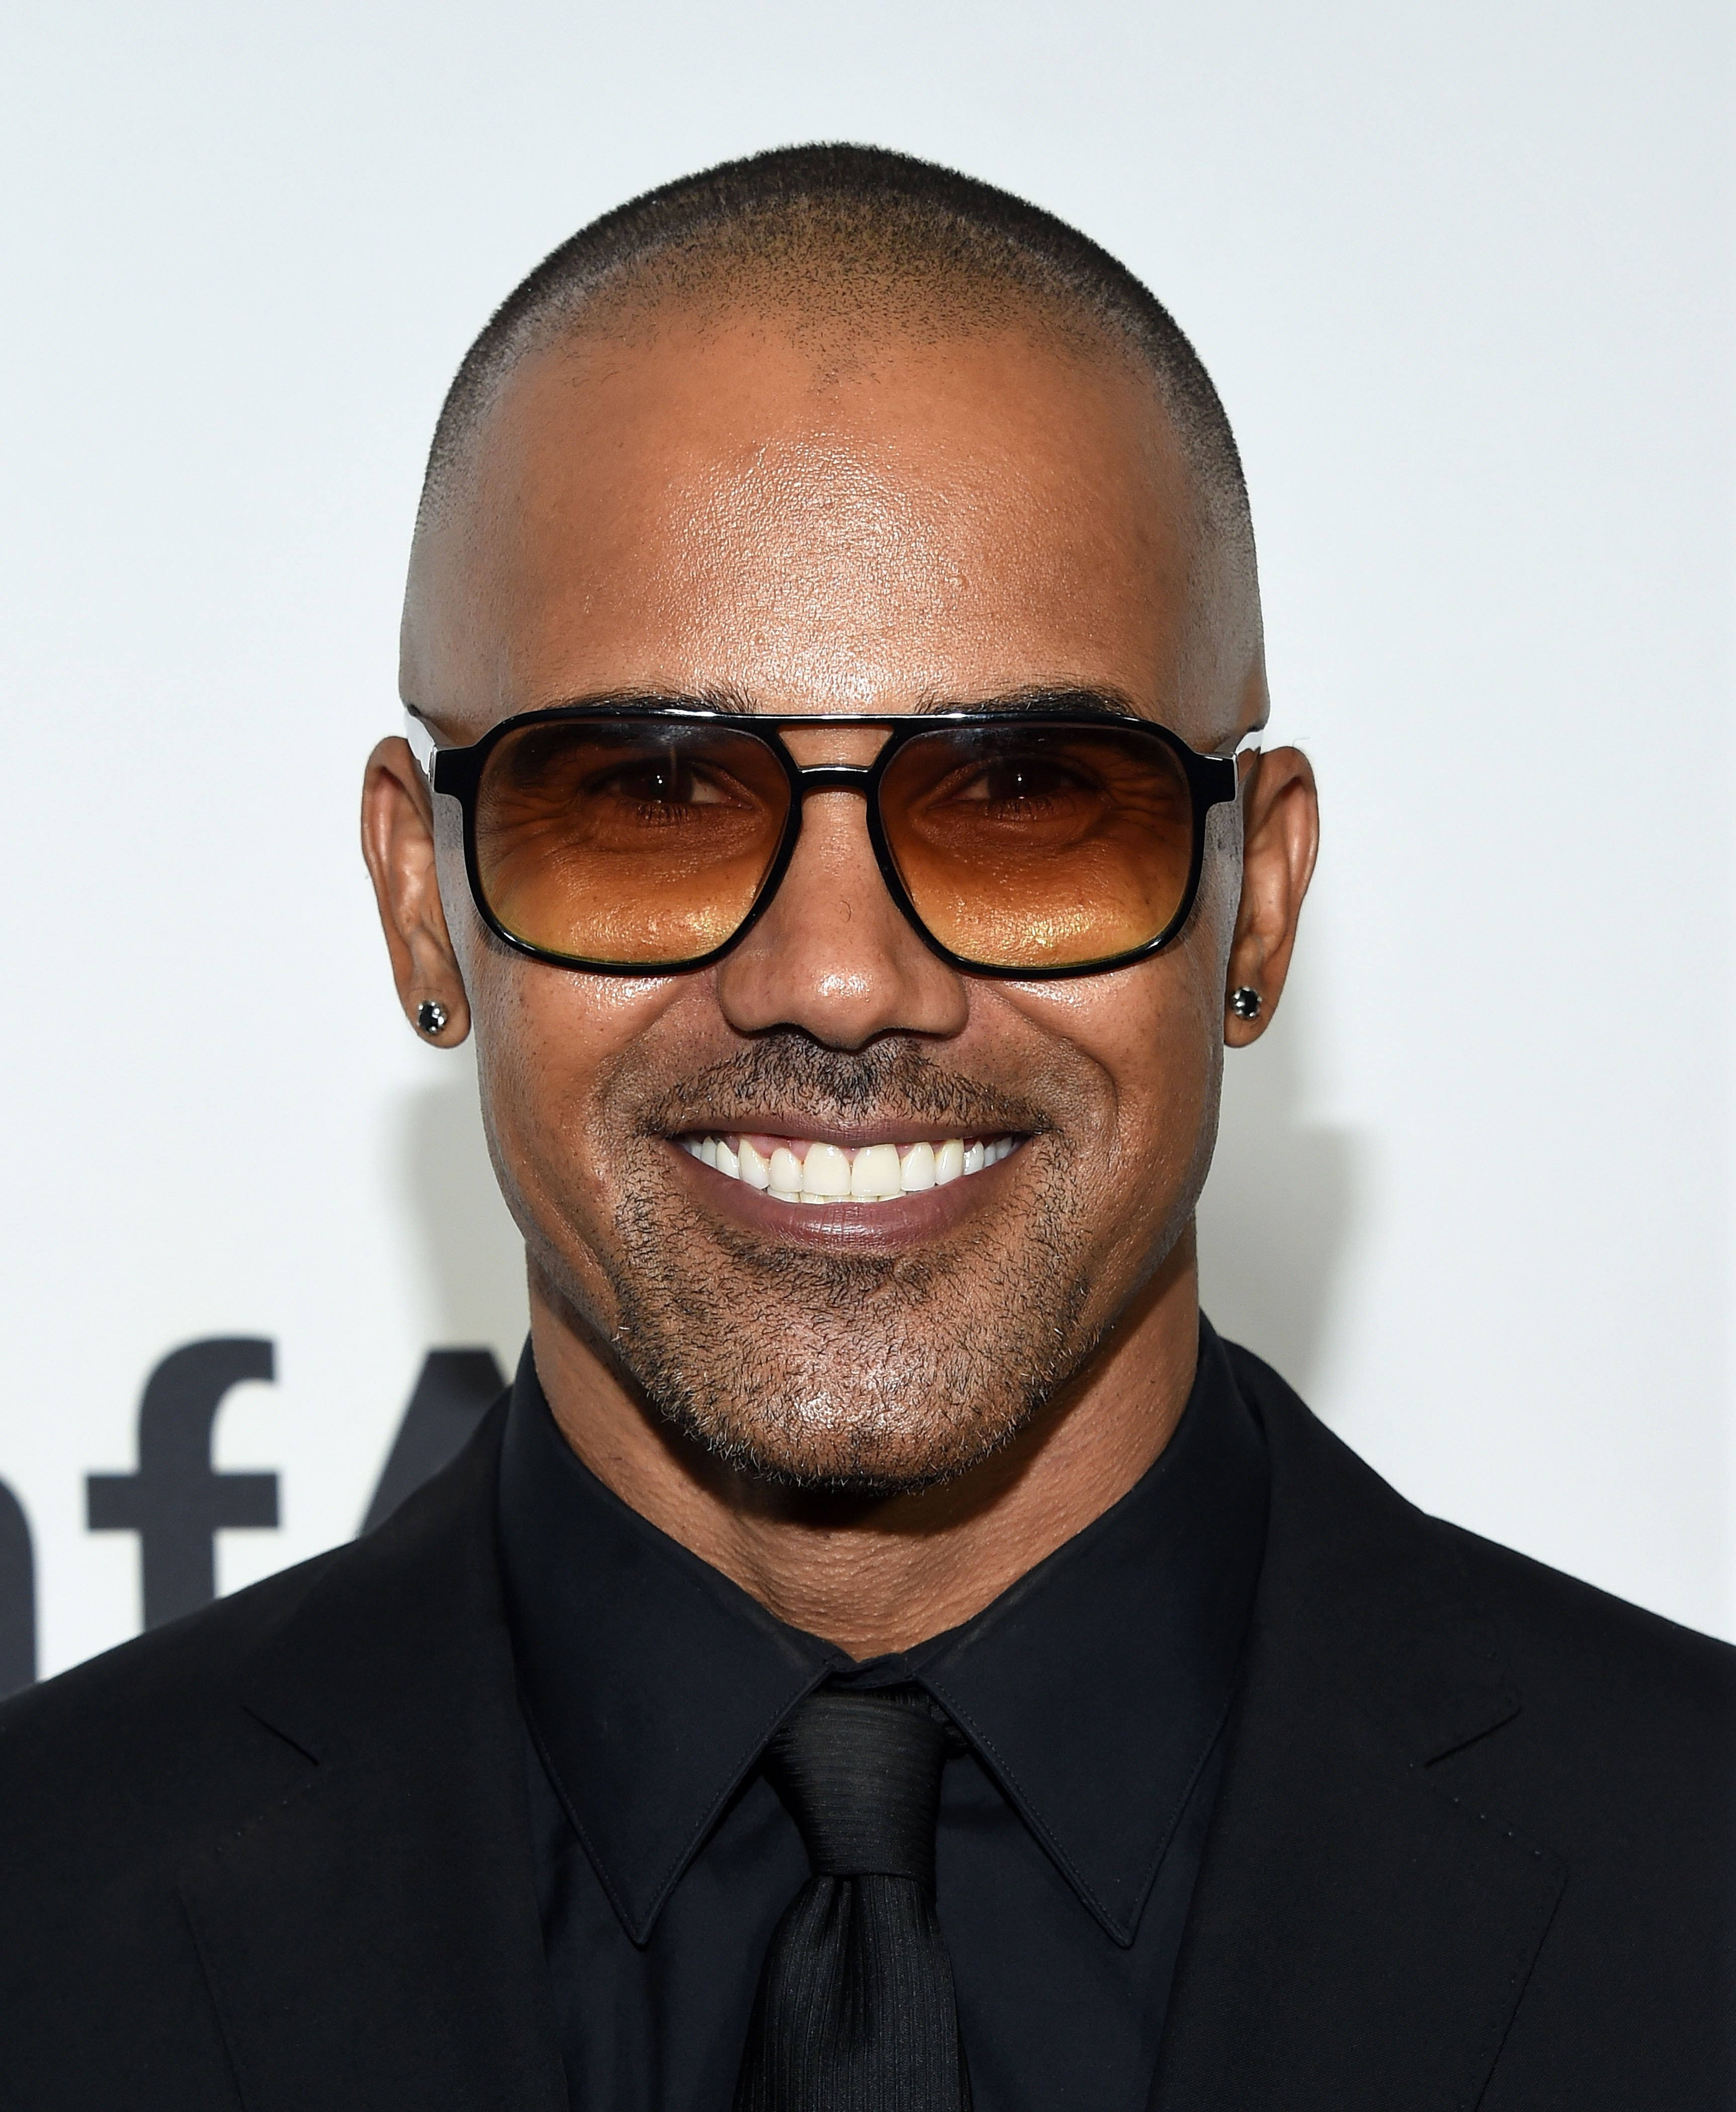 Shemar Moore pictured at the nds amfAR's Inspiration Gala in Los Angeles, California in 2016. | Source: Shutterstock